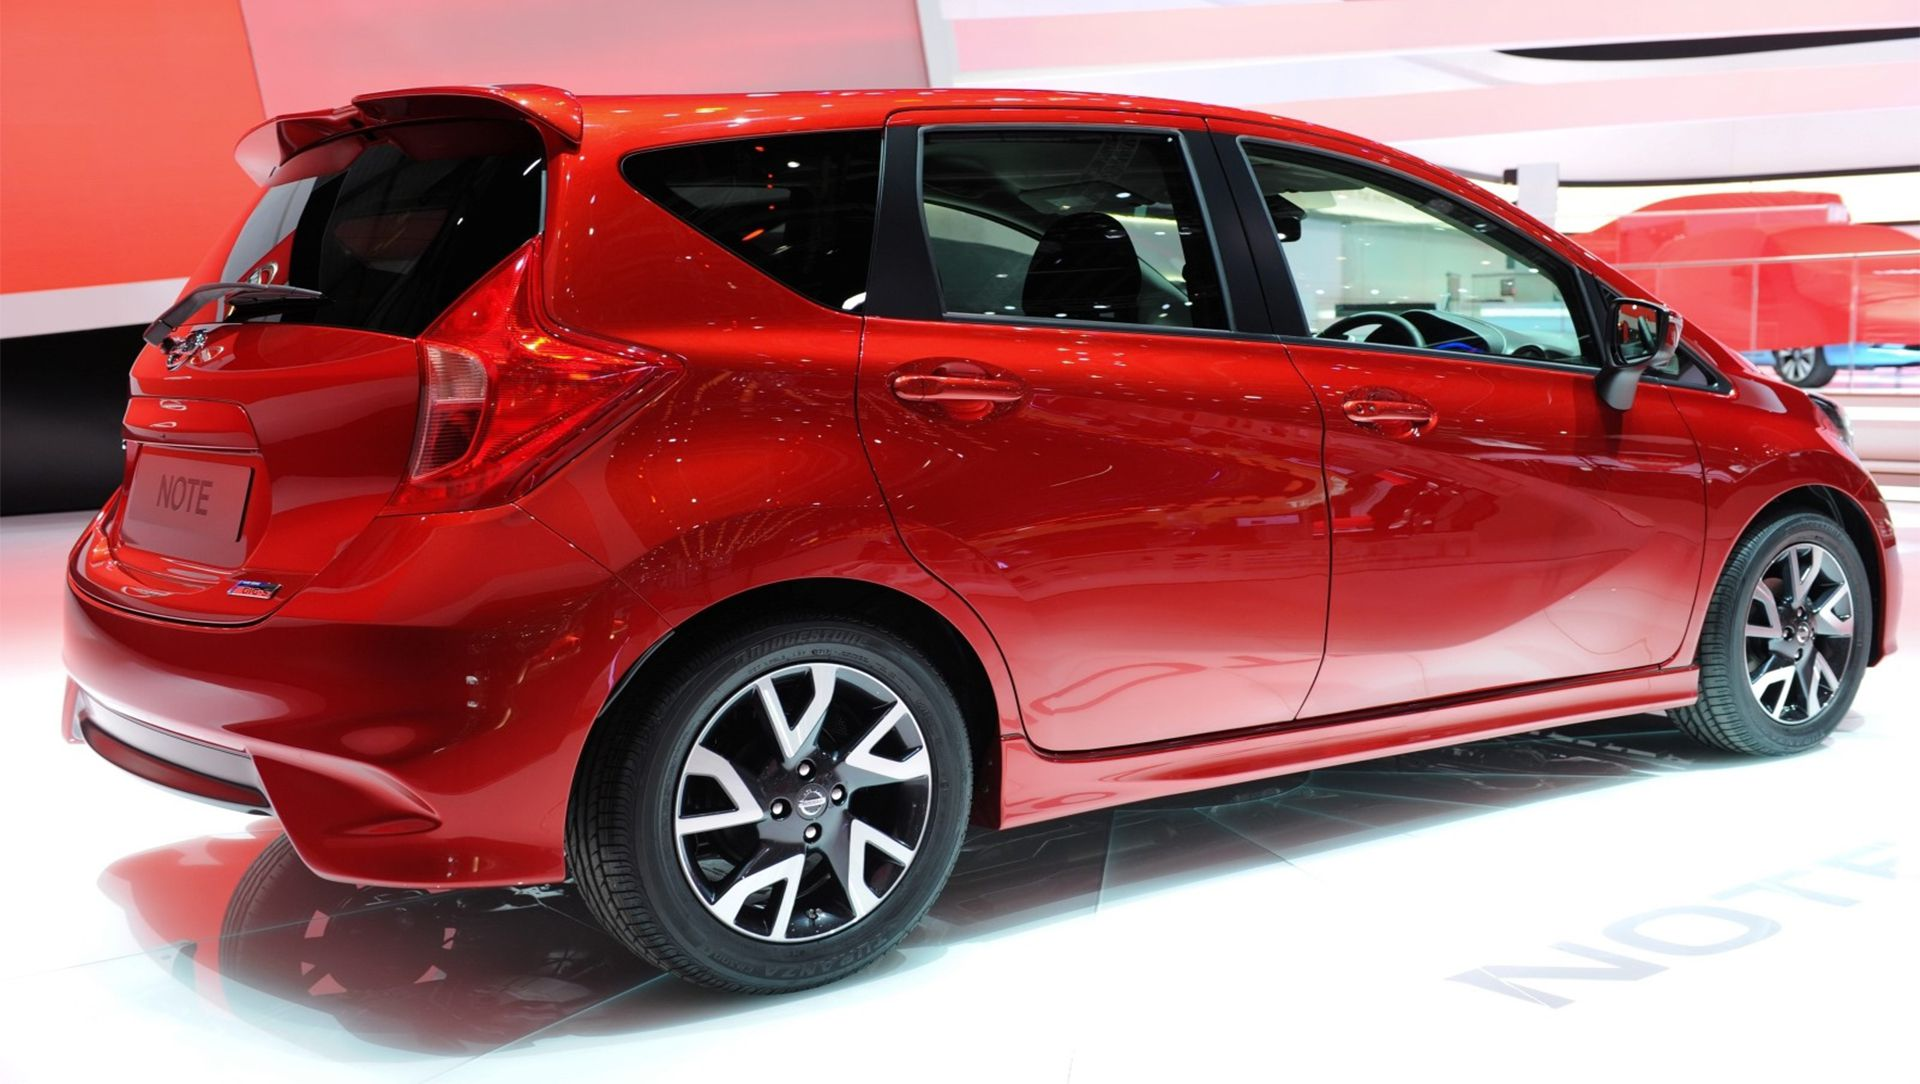 nissan note gets new 360-degree safety kit | auto moto | japan bullet